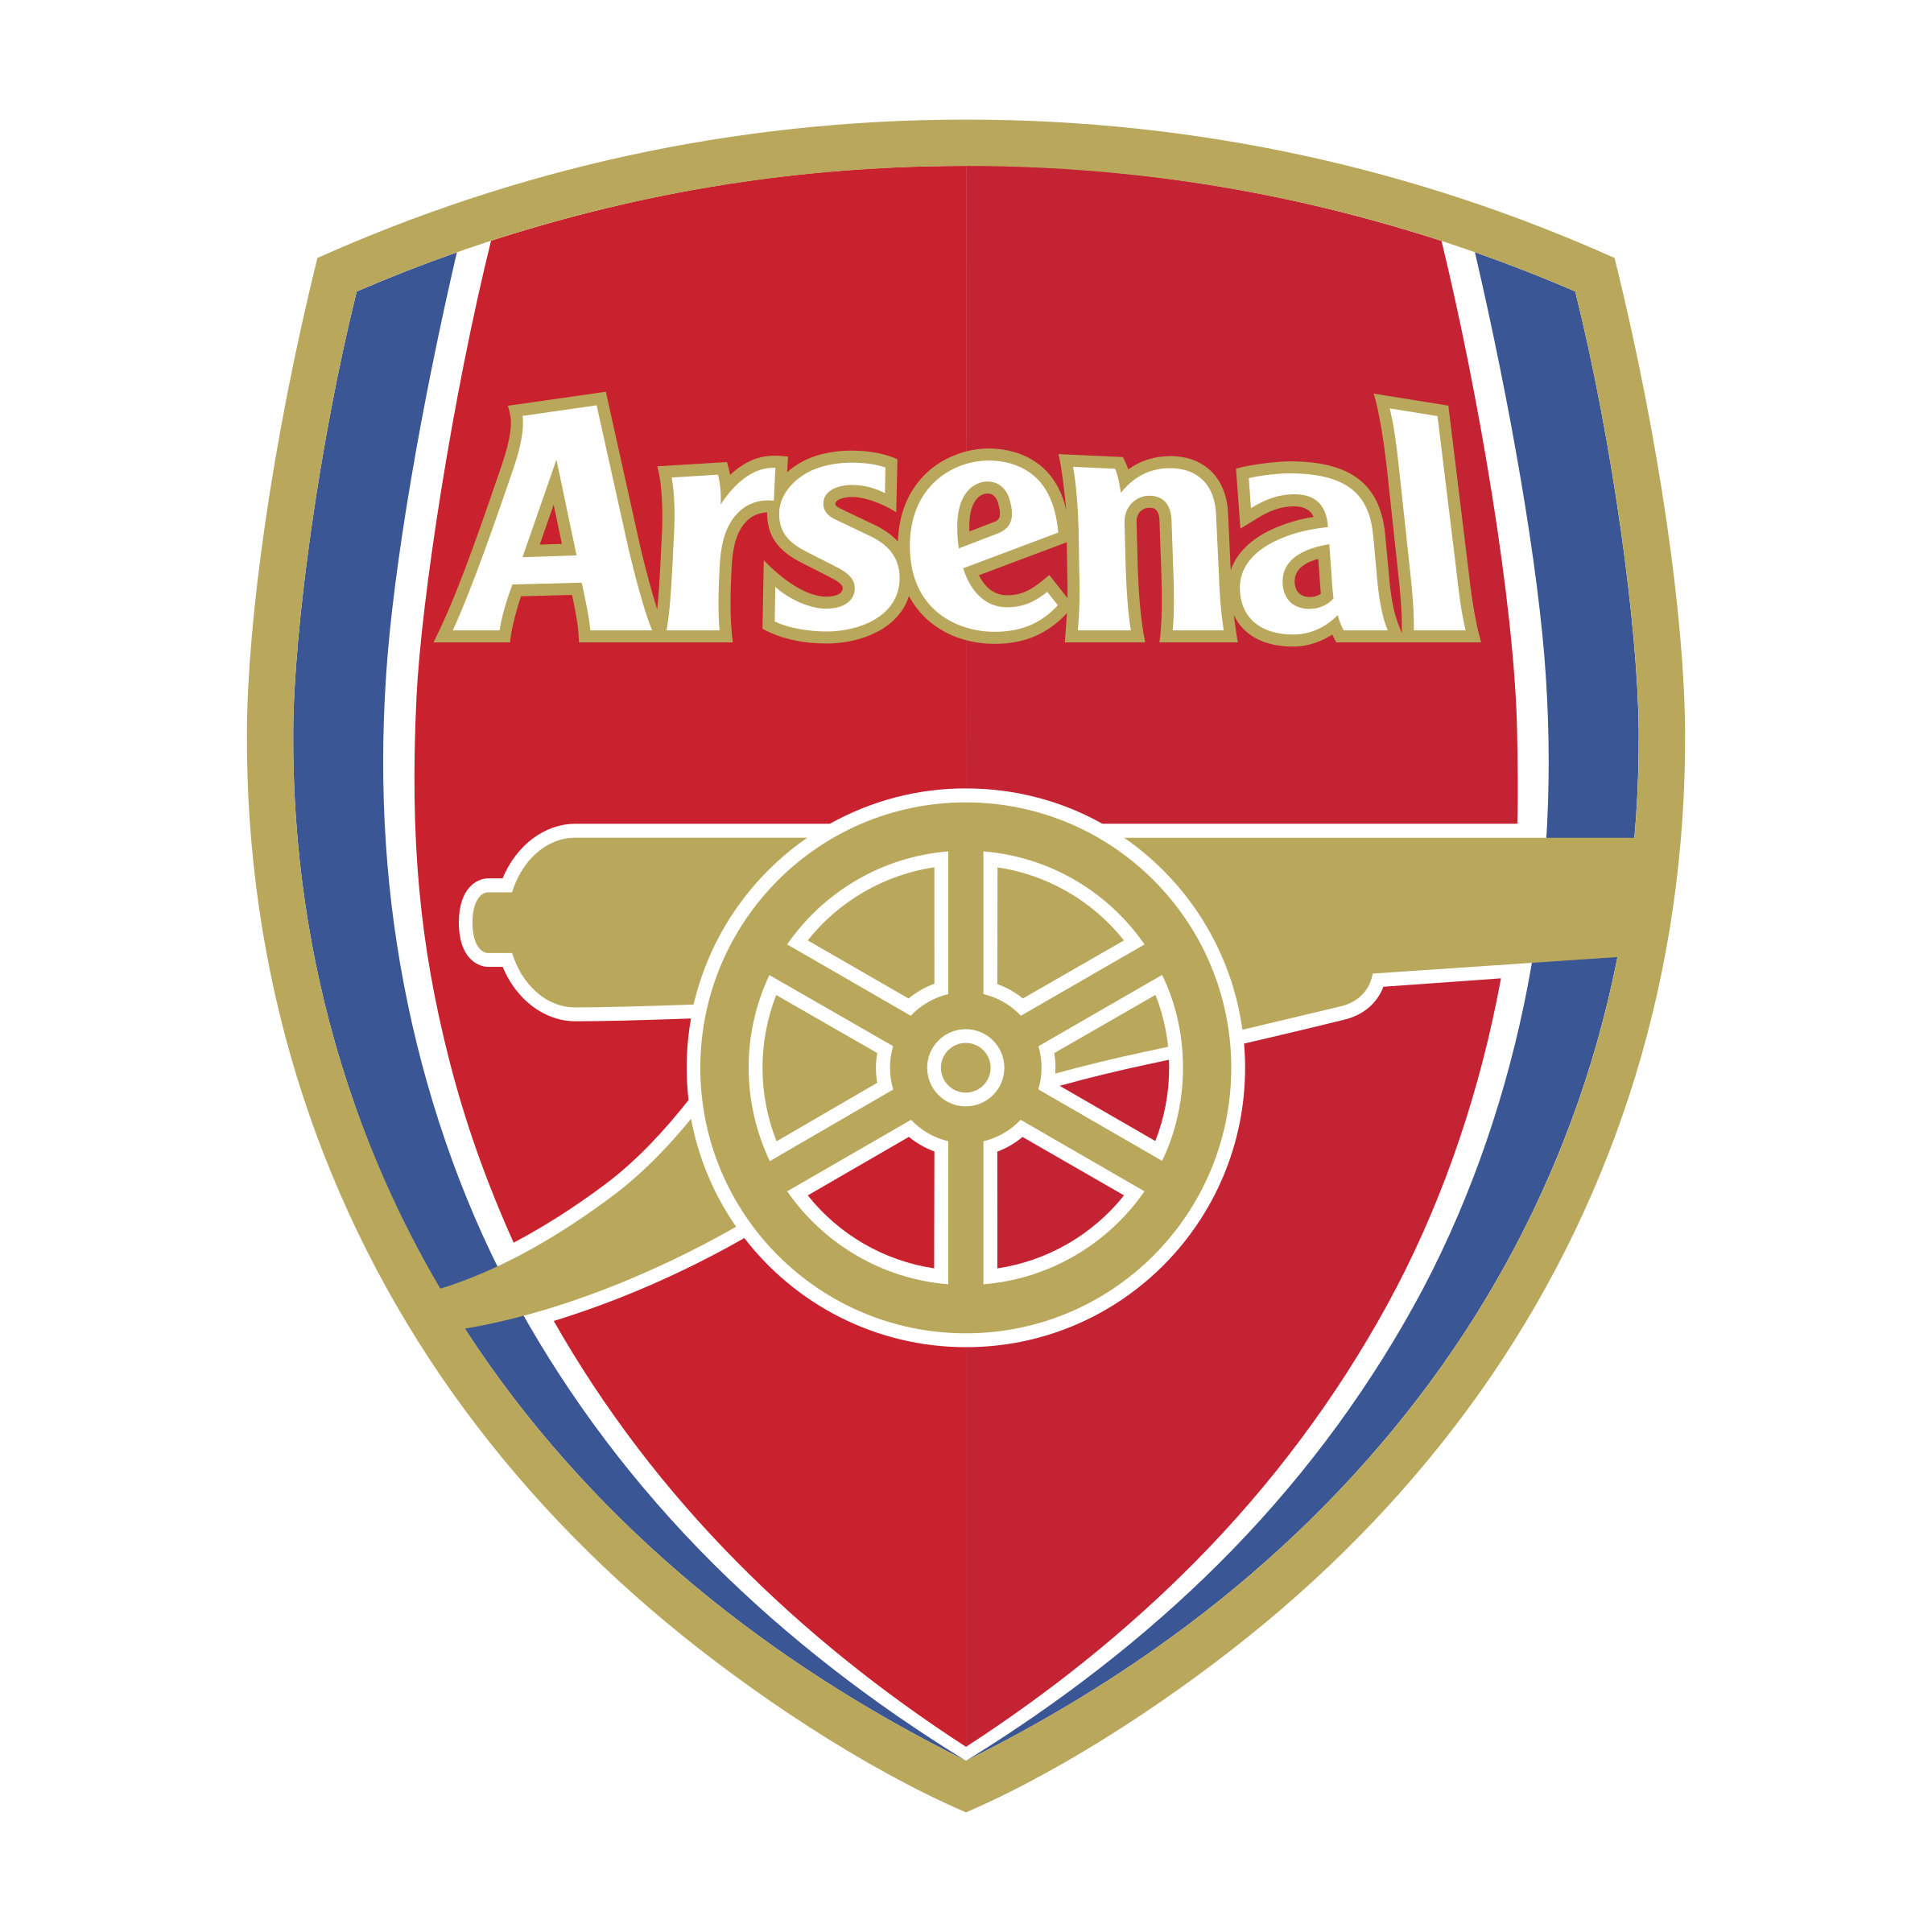 Arsenal logo png